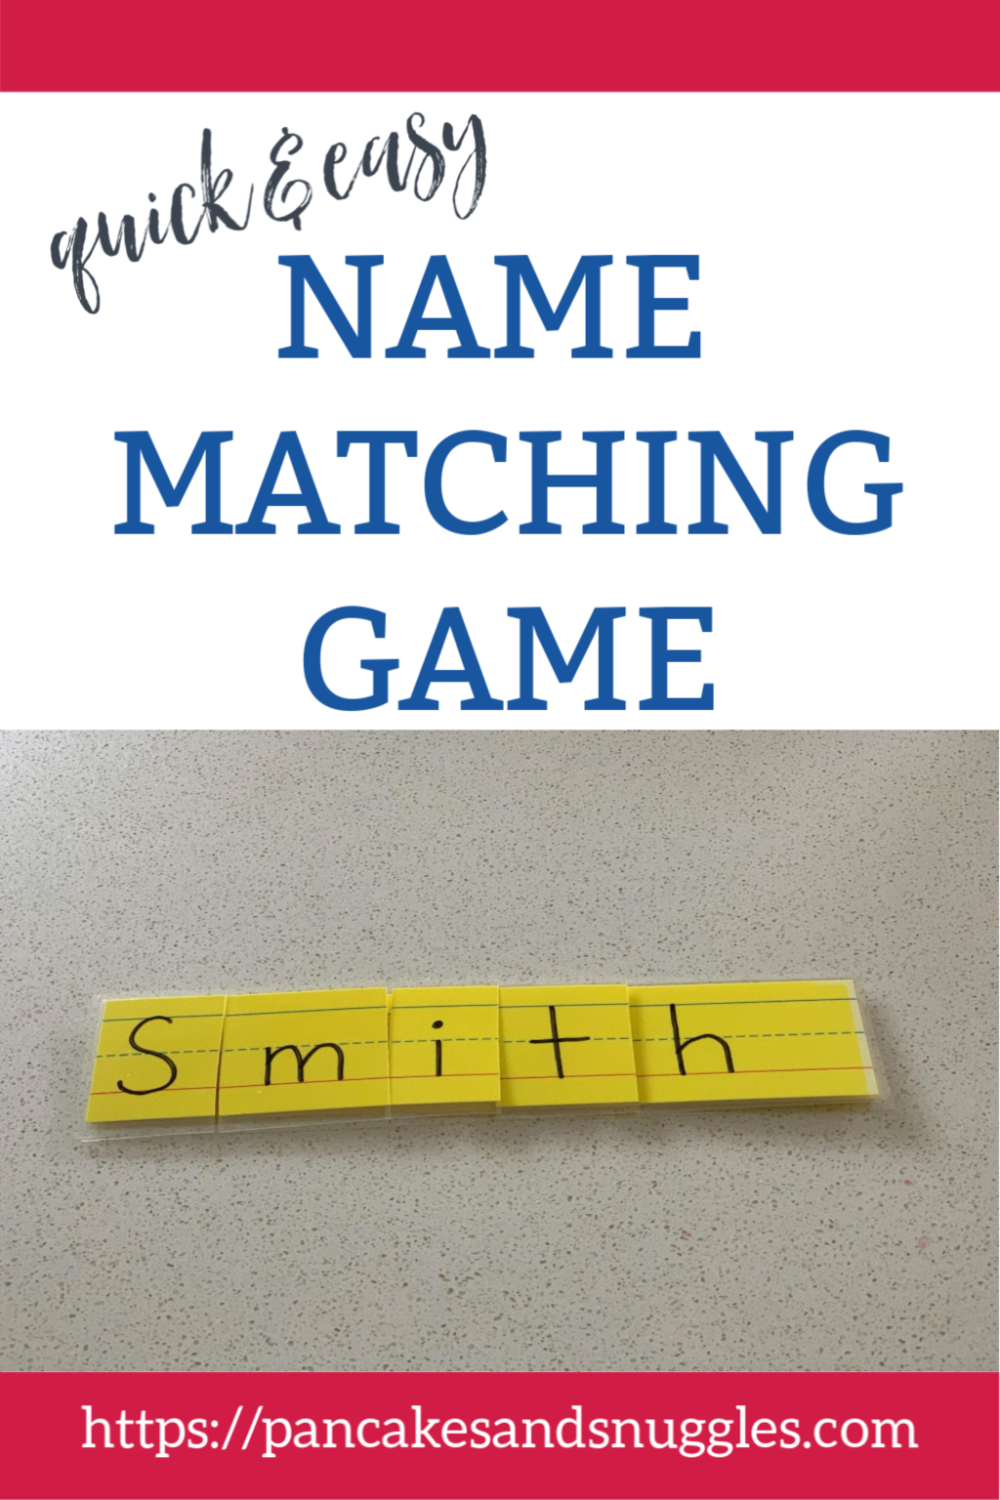 Name Matching Game